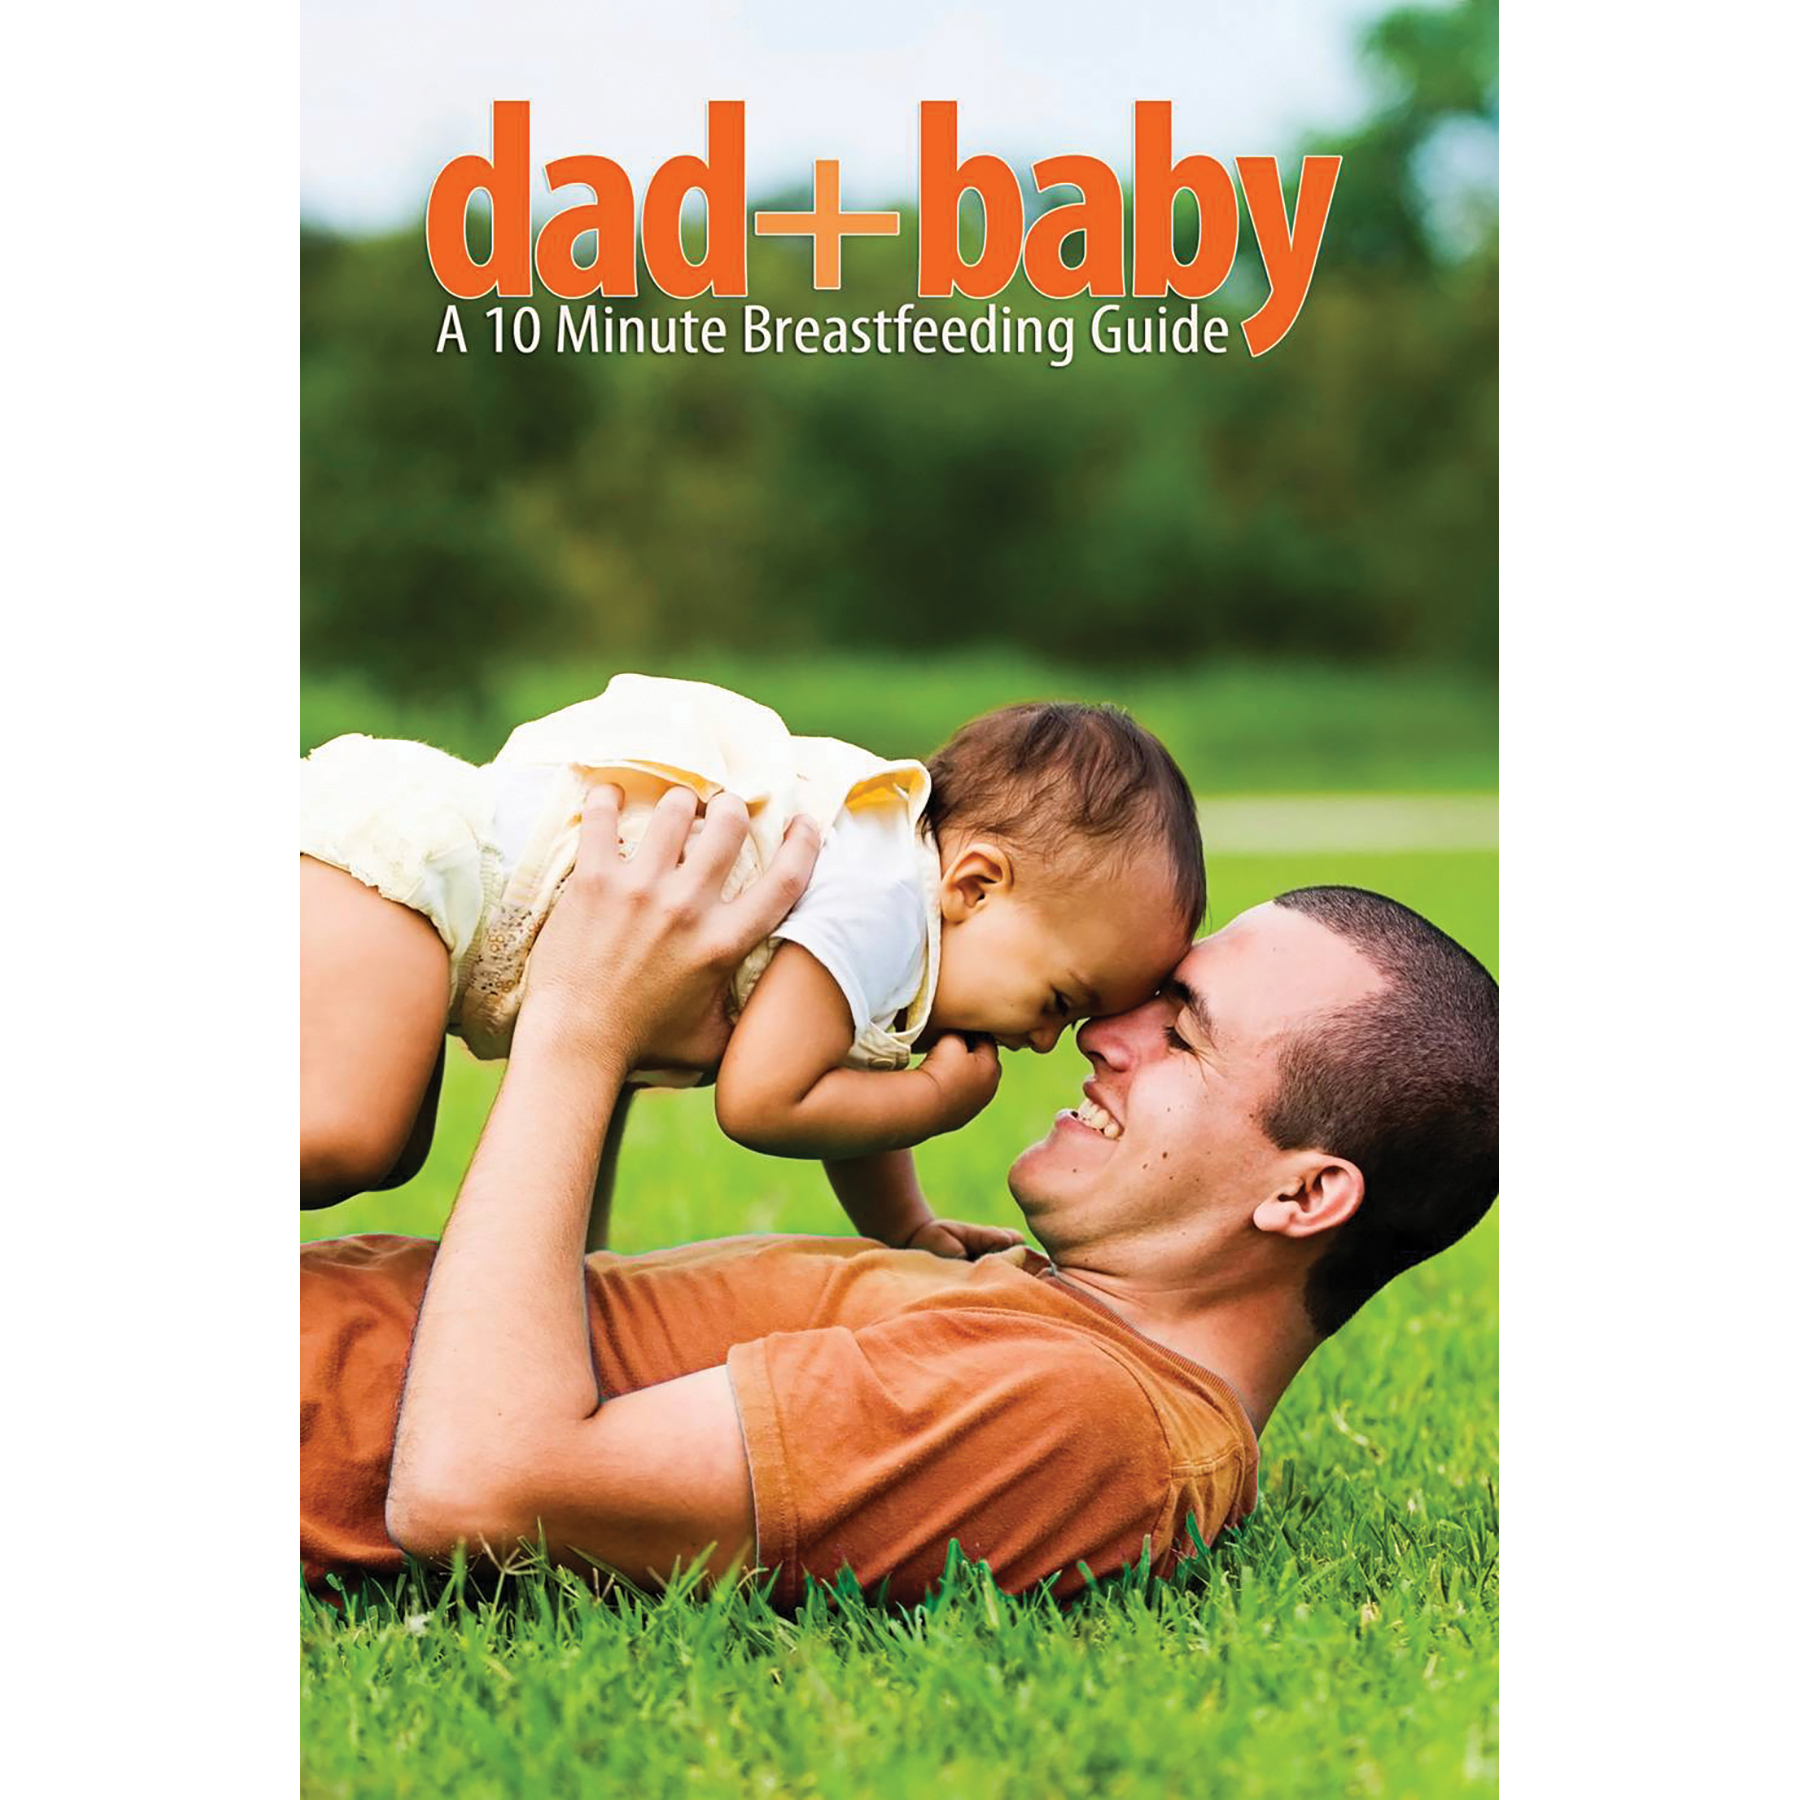 dad + baby 16 page booklet cover, features ways dad can assist when mom is breastfeeding. Childbirth Graphics, 40011